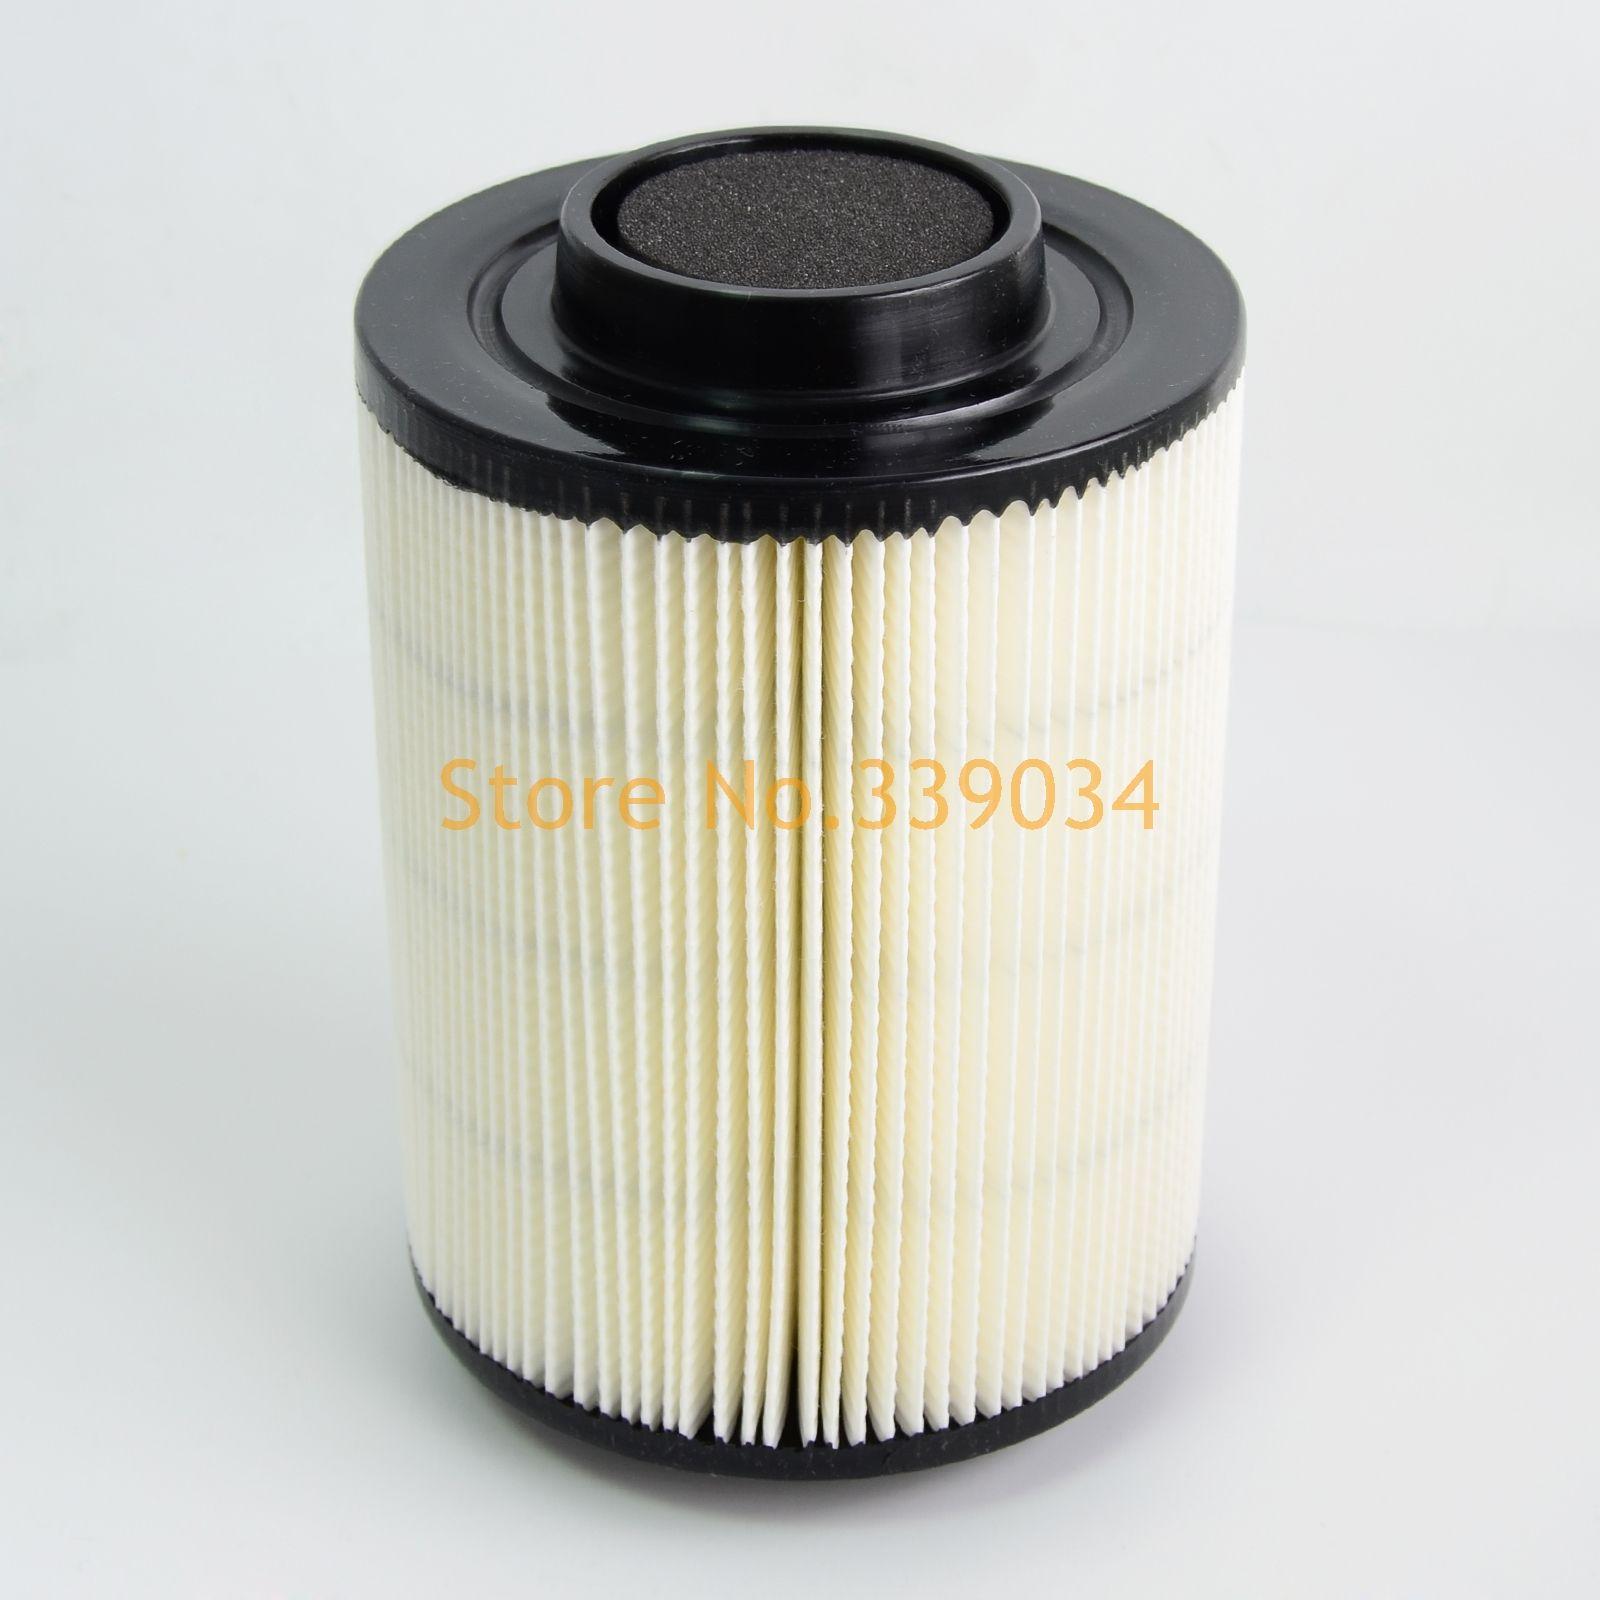 medium resolution of check discount motorcycle air filter cleaner for polaris ranger 800 rzr 4 rzr 800 le efi eps 2009 2011 polaris rzr 800